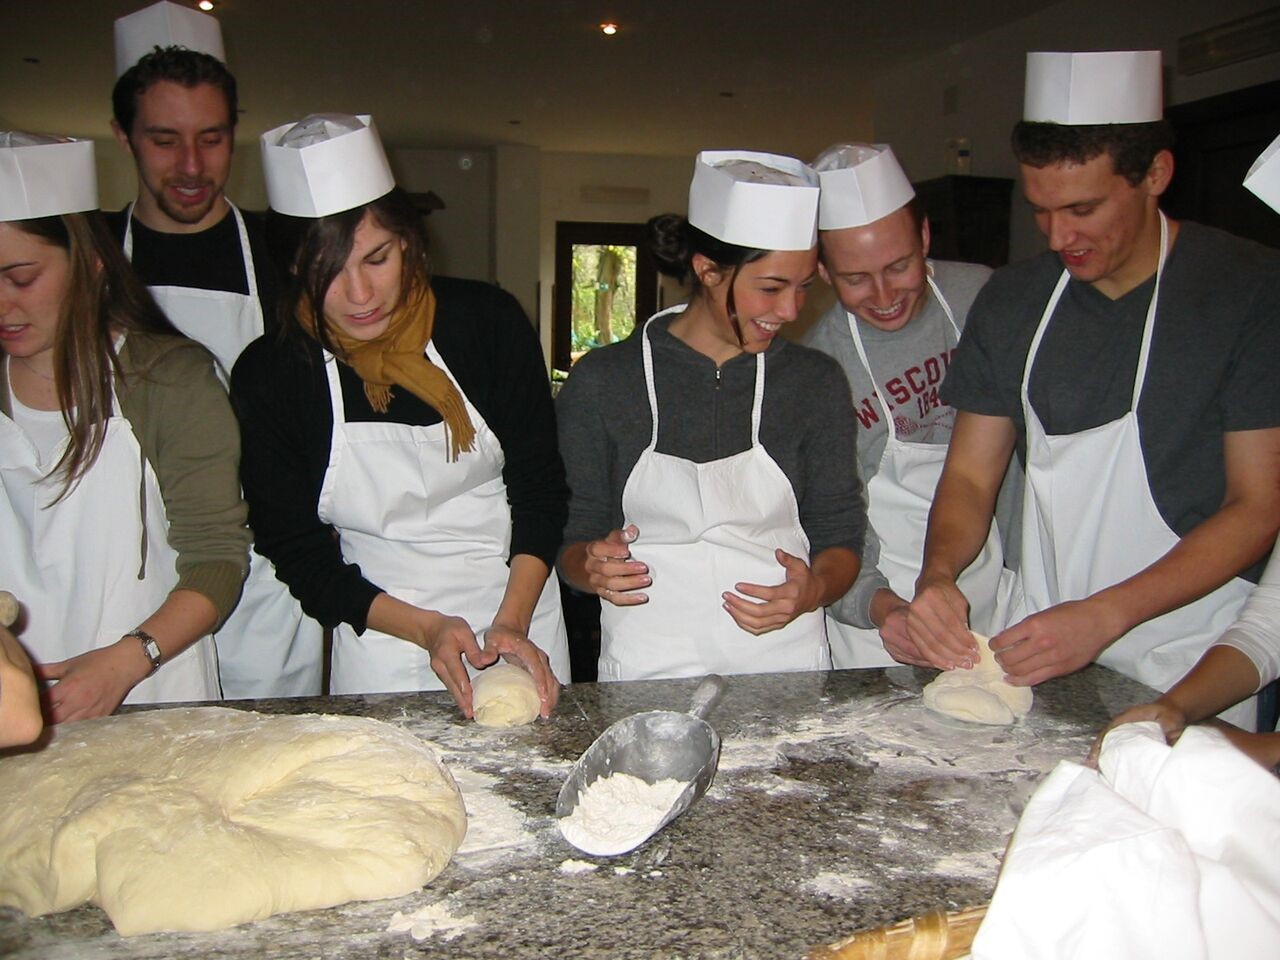 Students learn traditional Italian pasta-making at a JCU-hosted cooking class